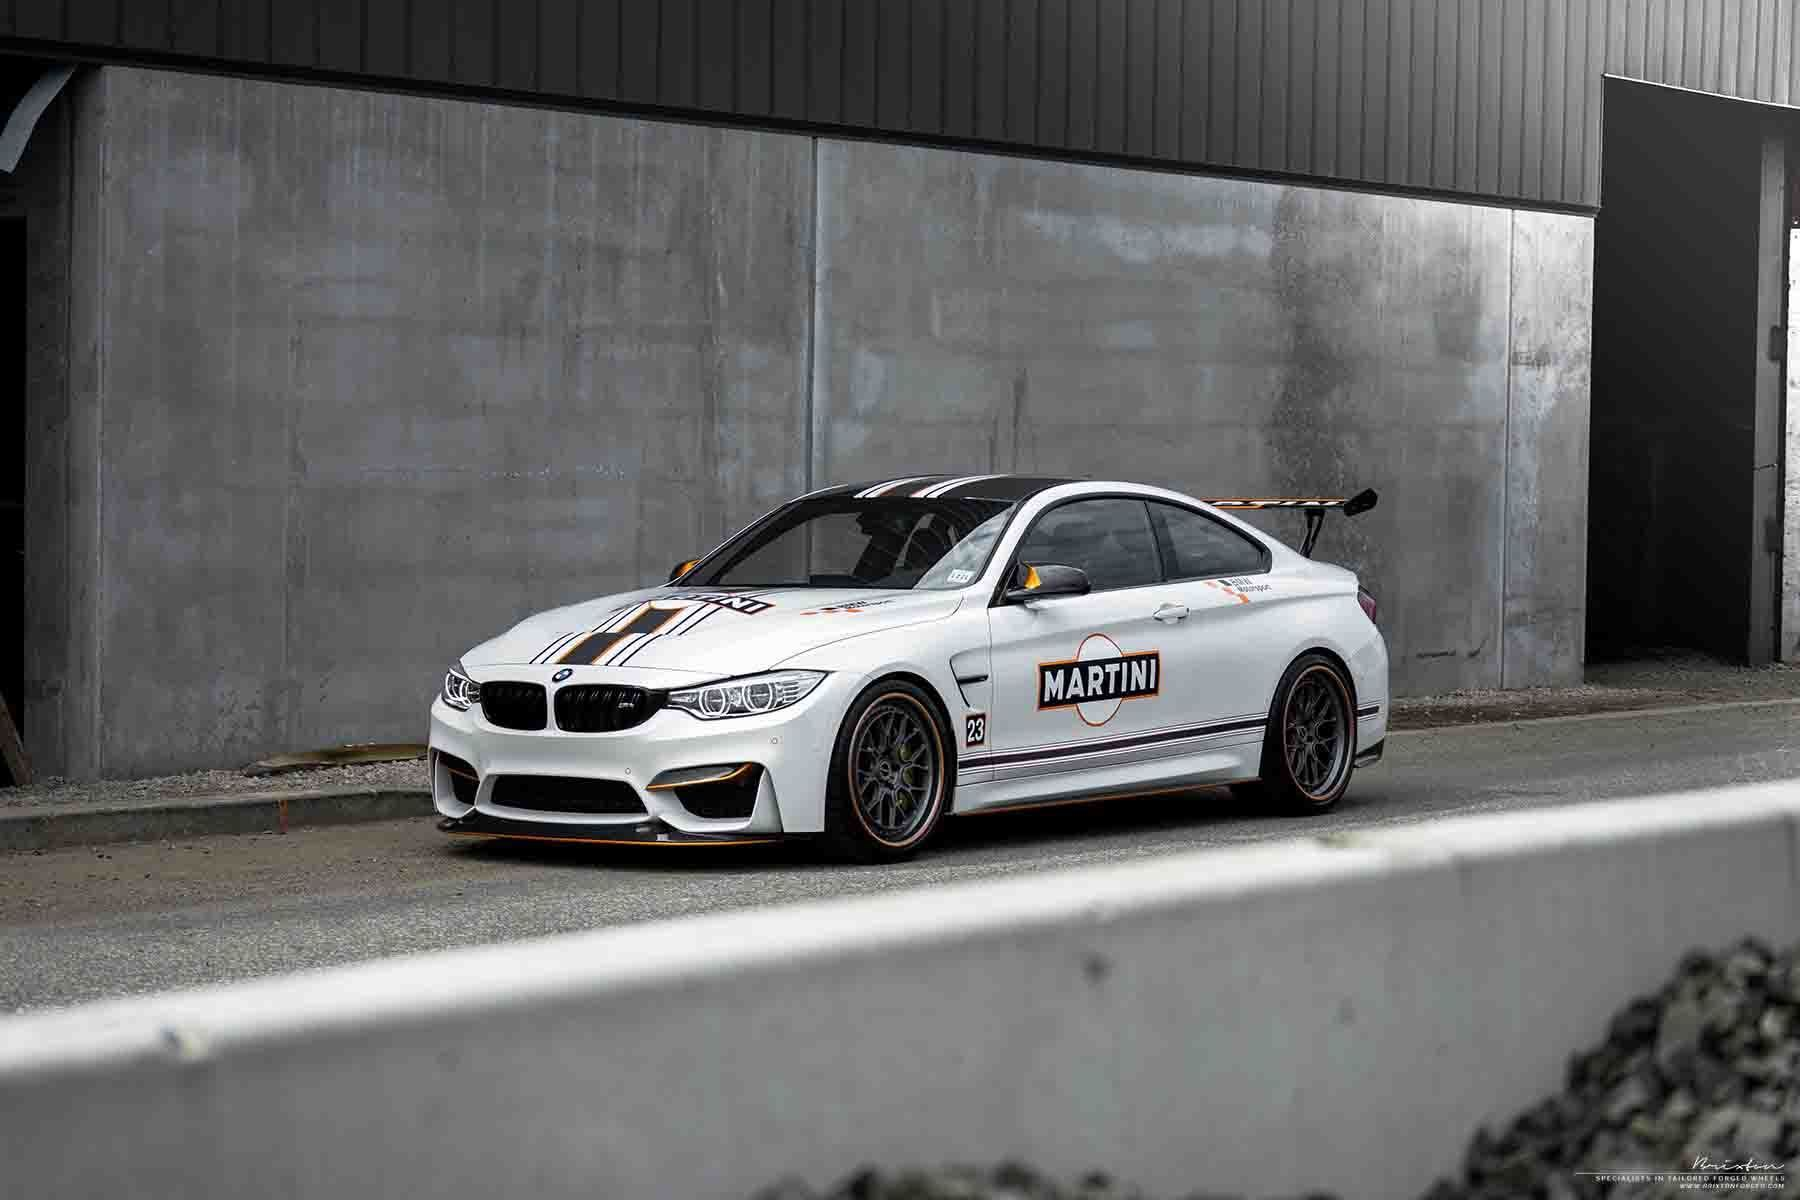 images-products-1-2714-232975002-white-bmw-m4-gts-martini-brixton-forged-cm16-wheels-cm16-circuit-series-kingsport-grey-concave-o.jpg